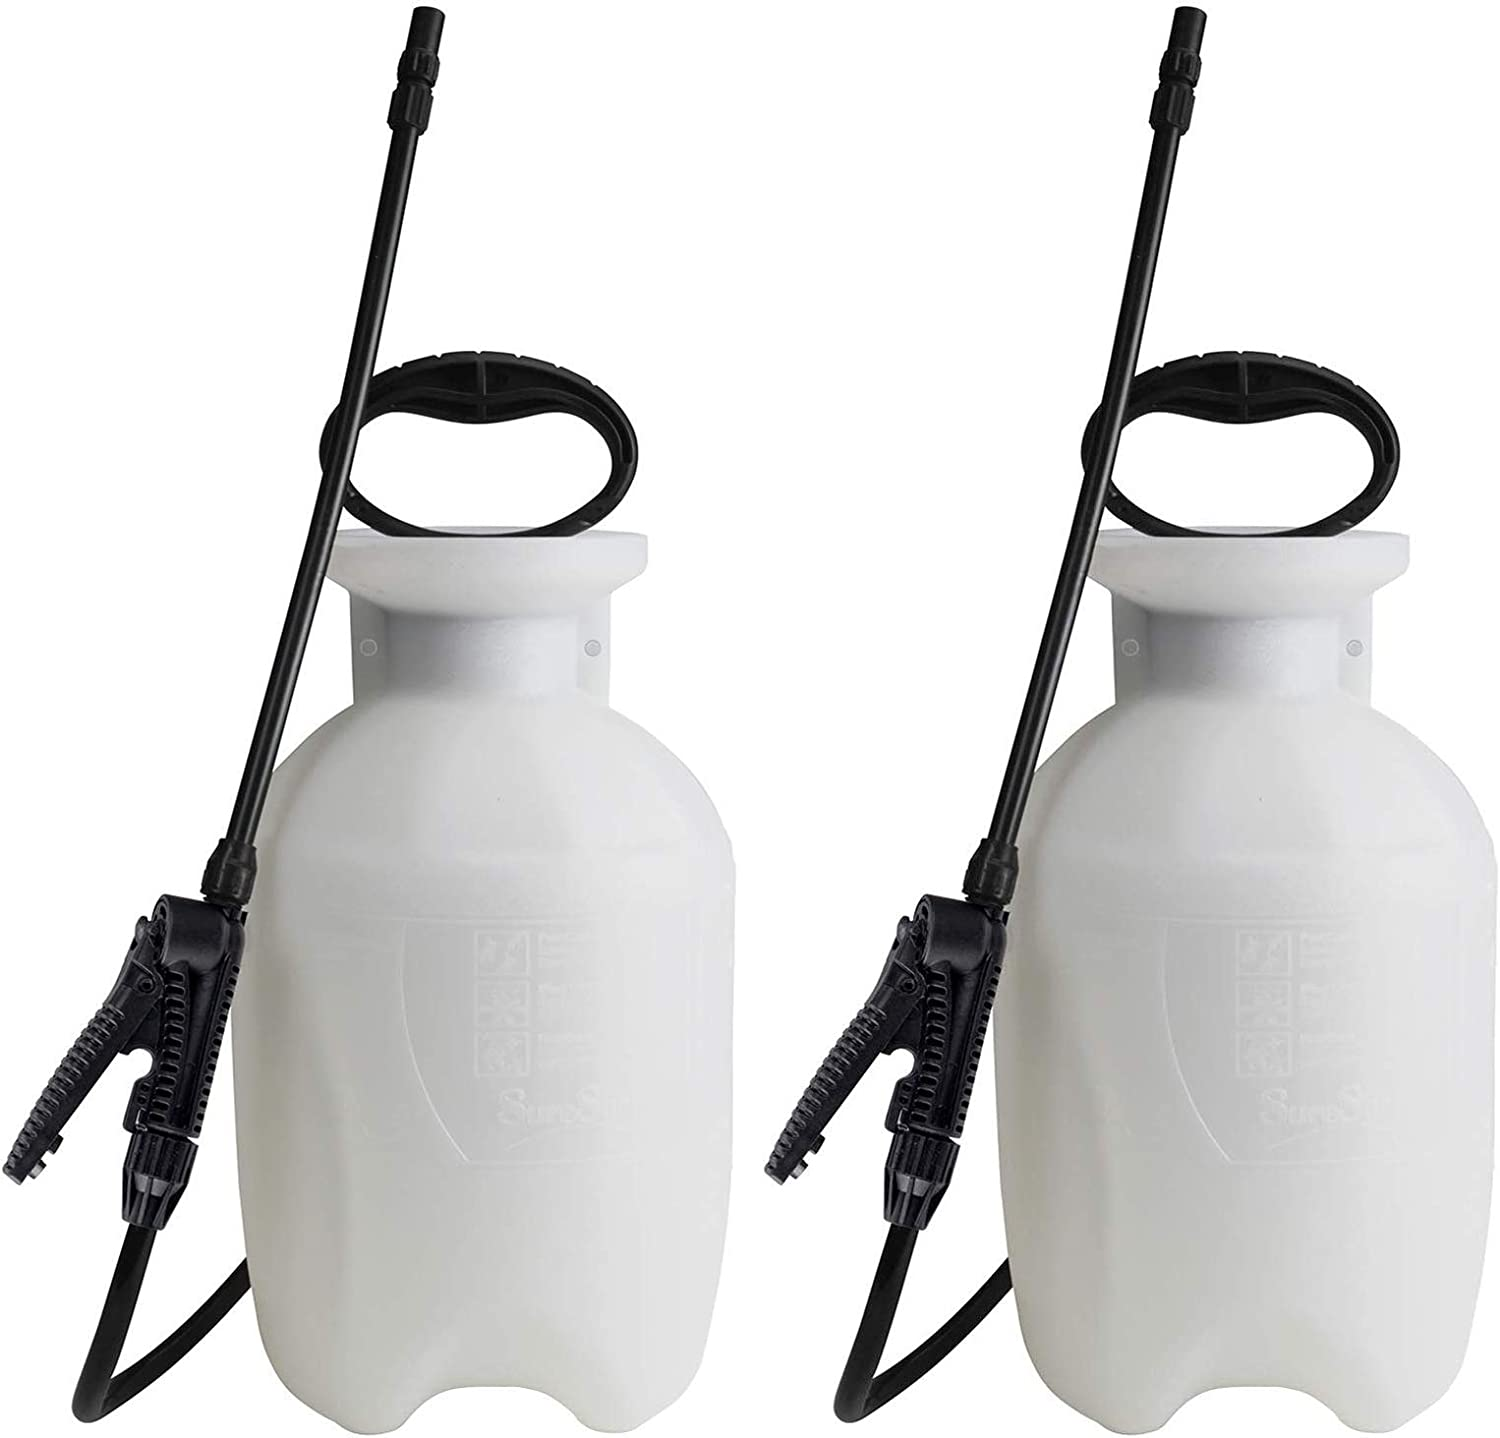 Chapin 20000, 1 Gallon Lawn, Garden and Multi-Purpose Sprayer with Adjustable Nozzle, Translucent White, 2 Pack